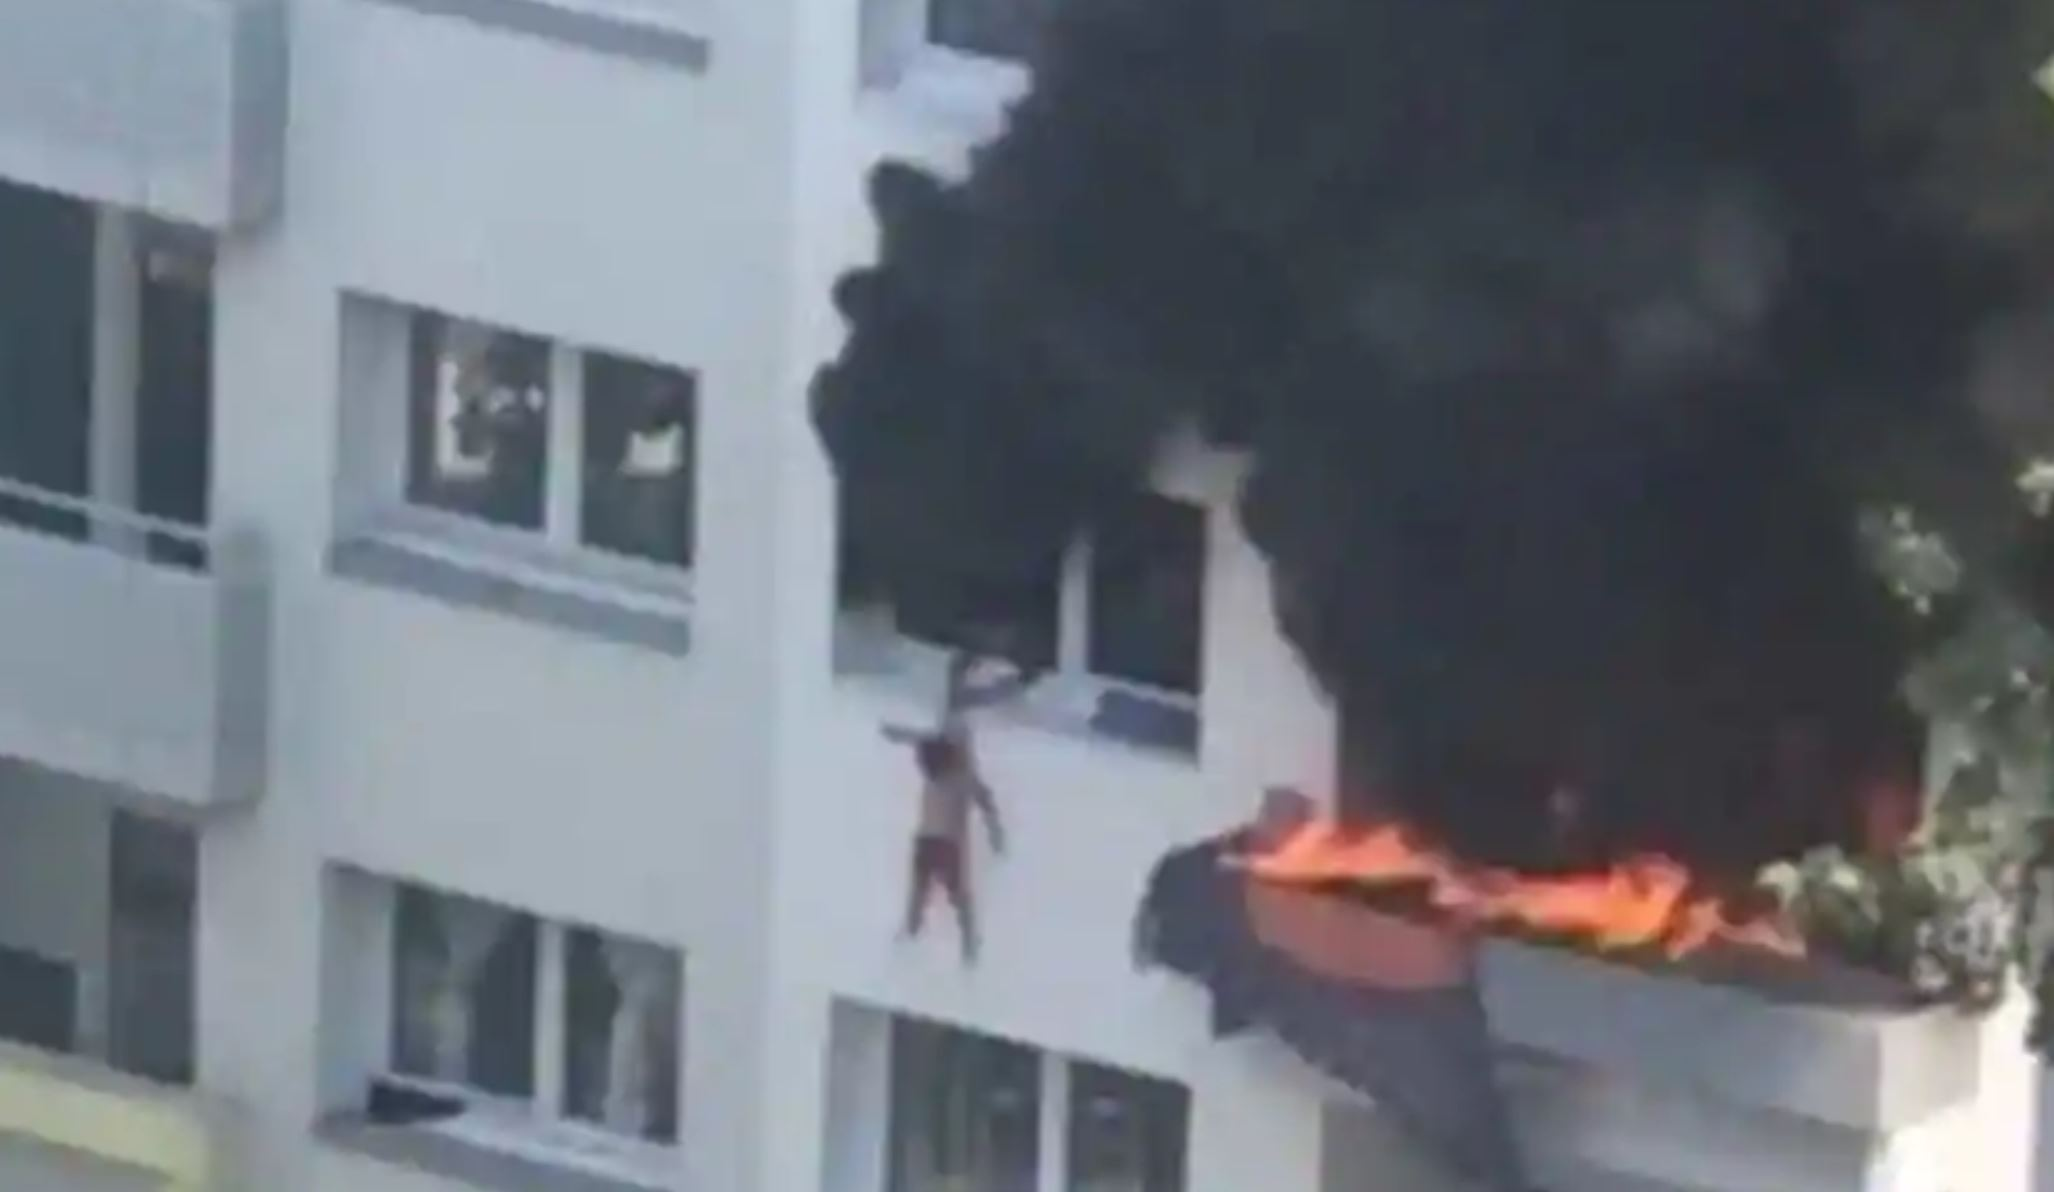 WATCH: Children miraculously saved by crowd after jumping from burning building in France